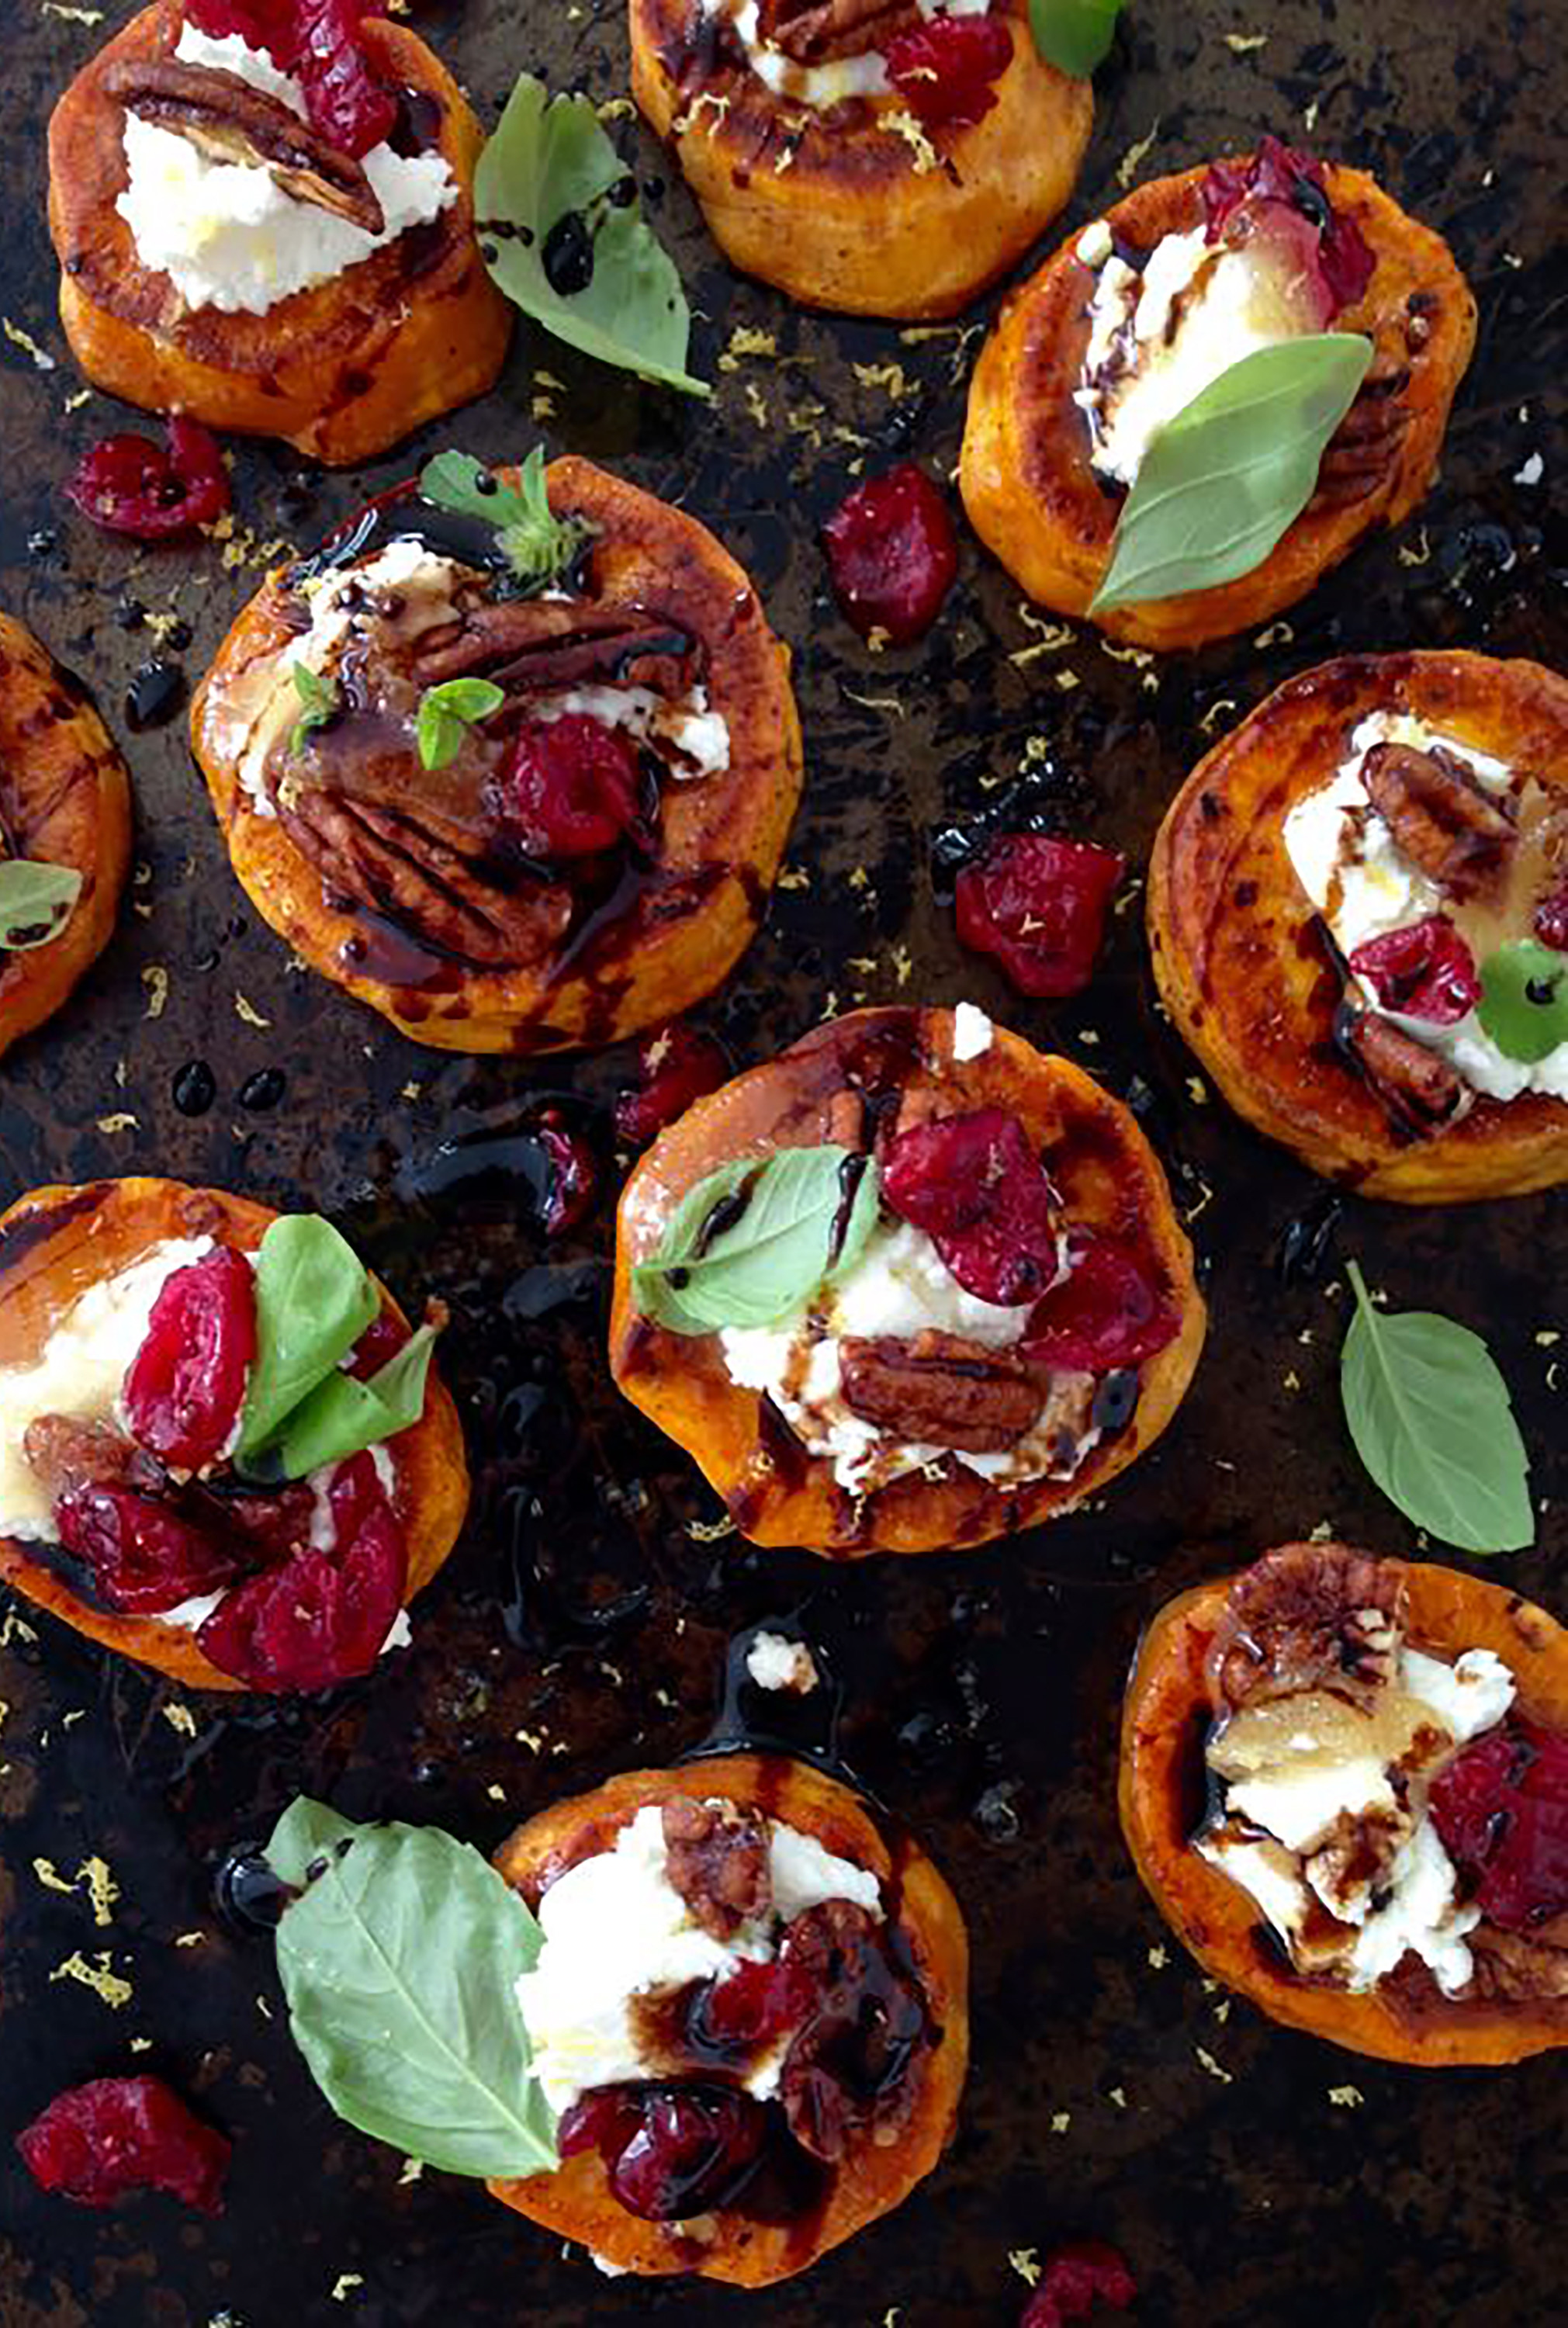 Healthy Fall Appetizers  13 Easy Fall Appetizers Best Recipes & Ideas for Autumn